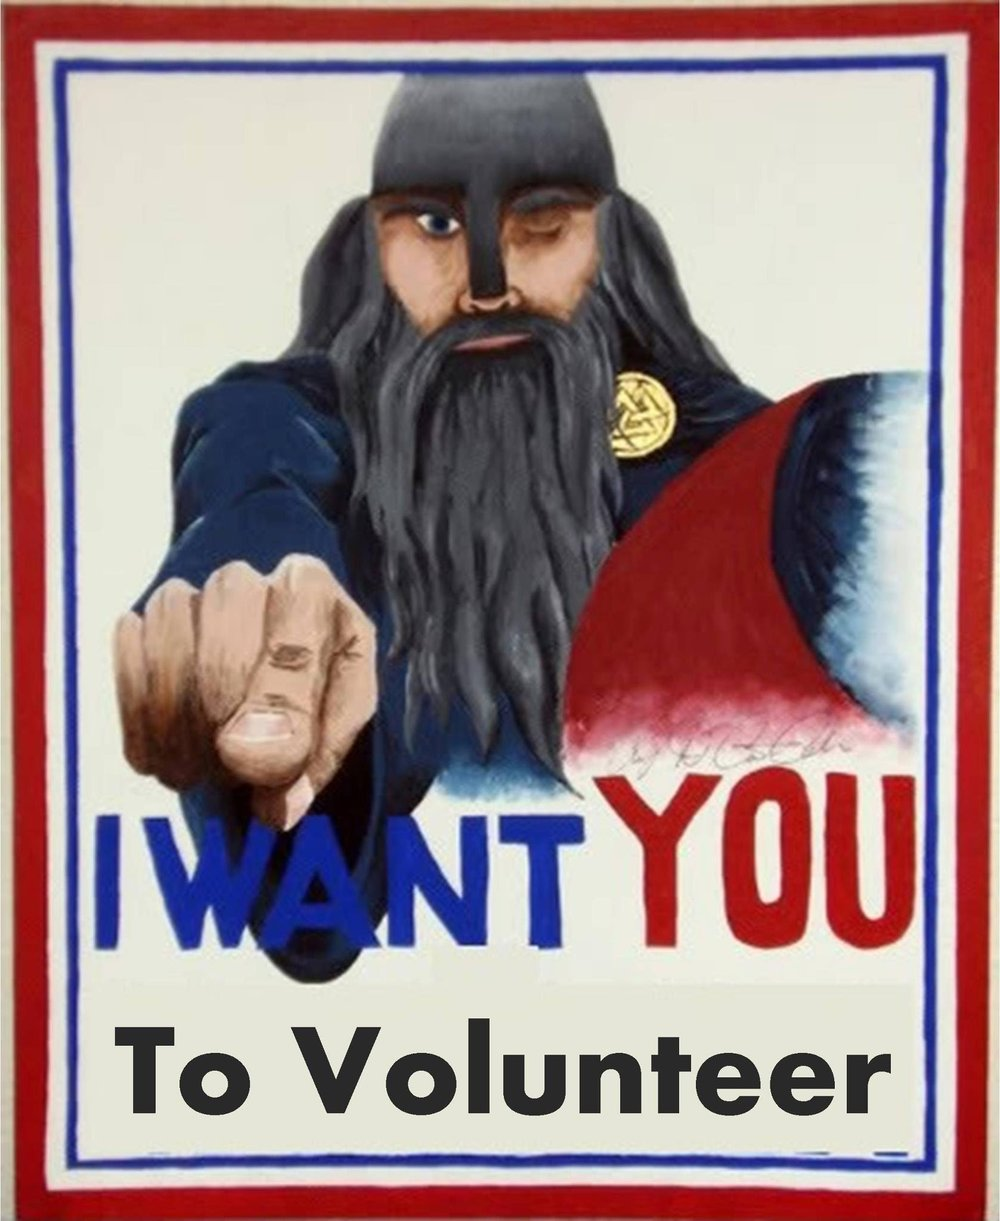 viking_want_you_volunteer.jpg